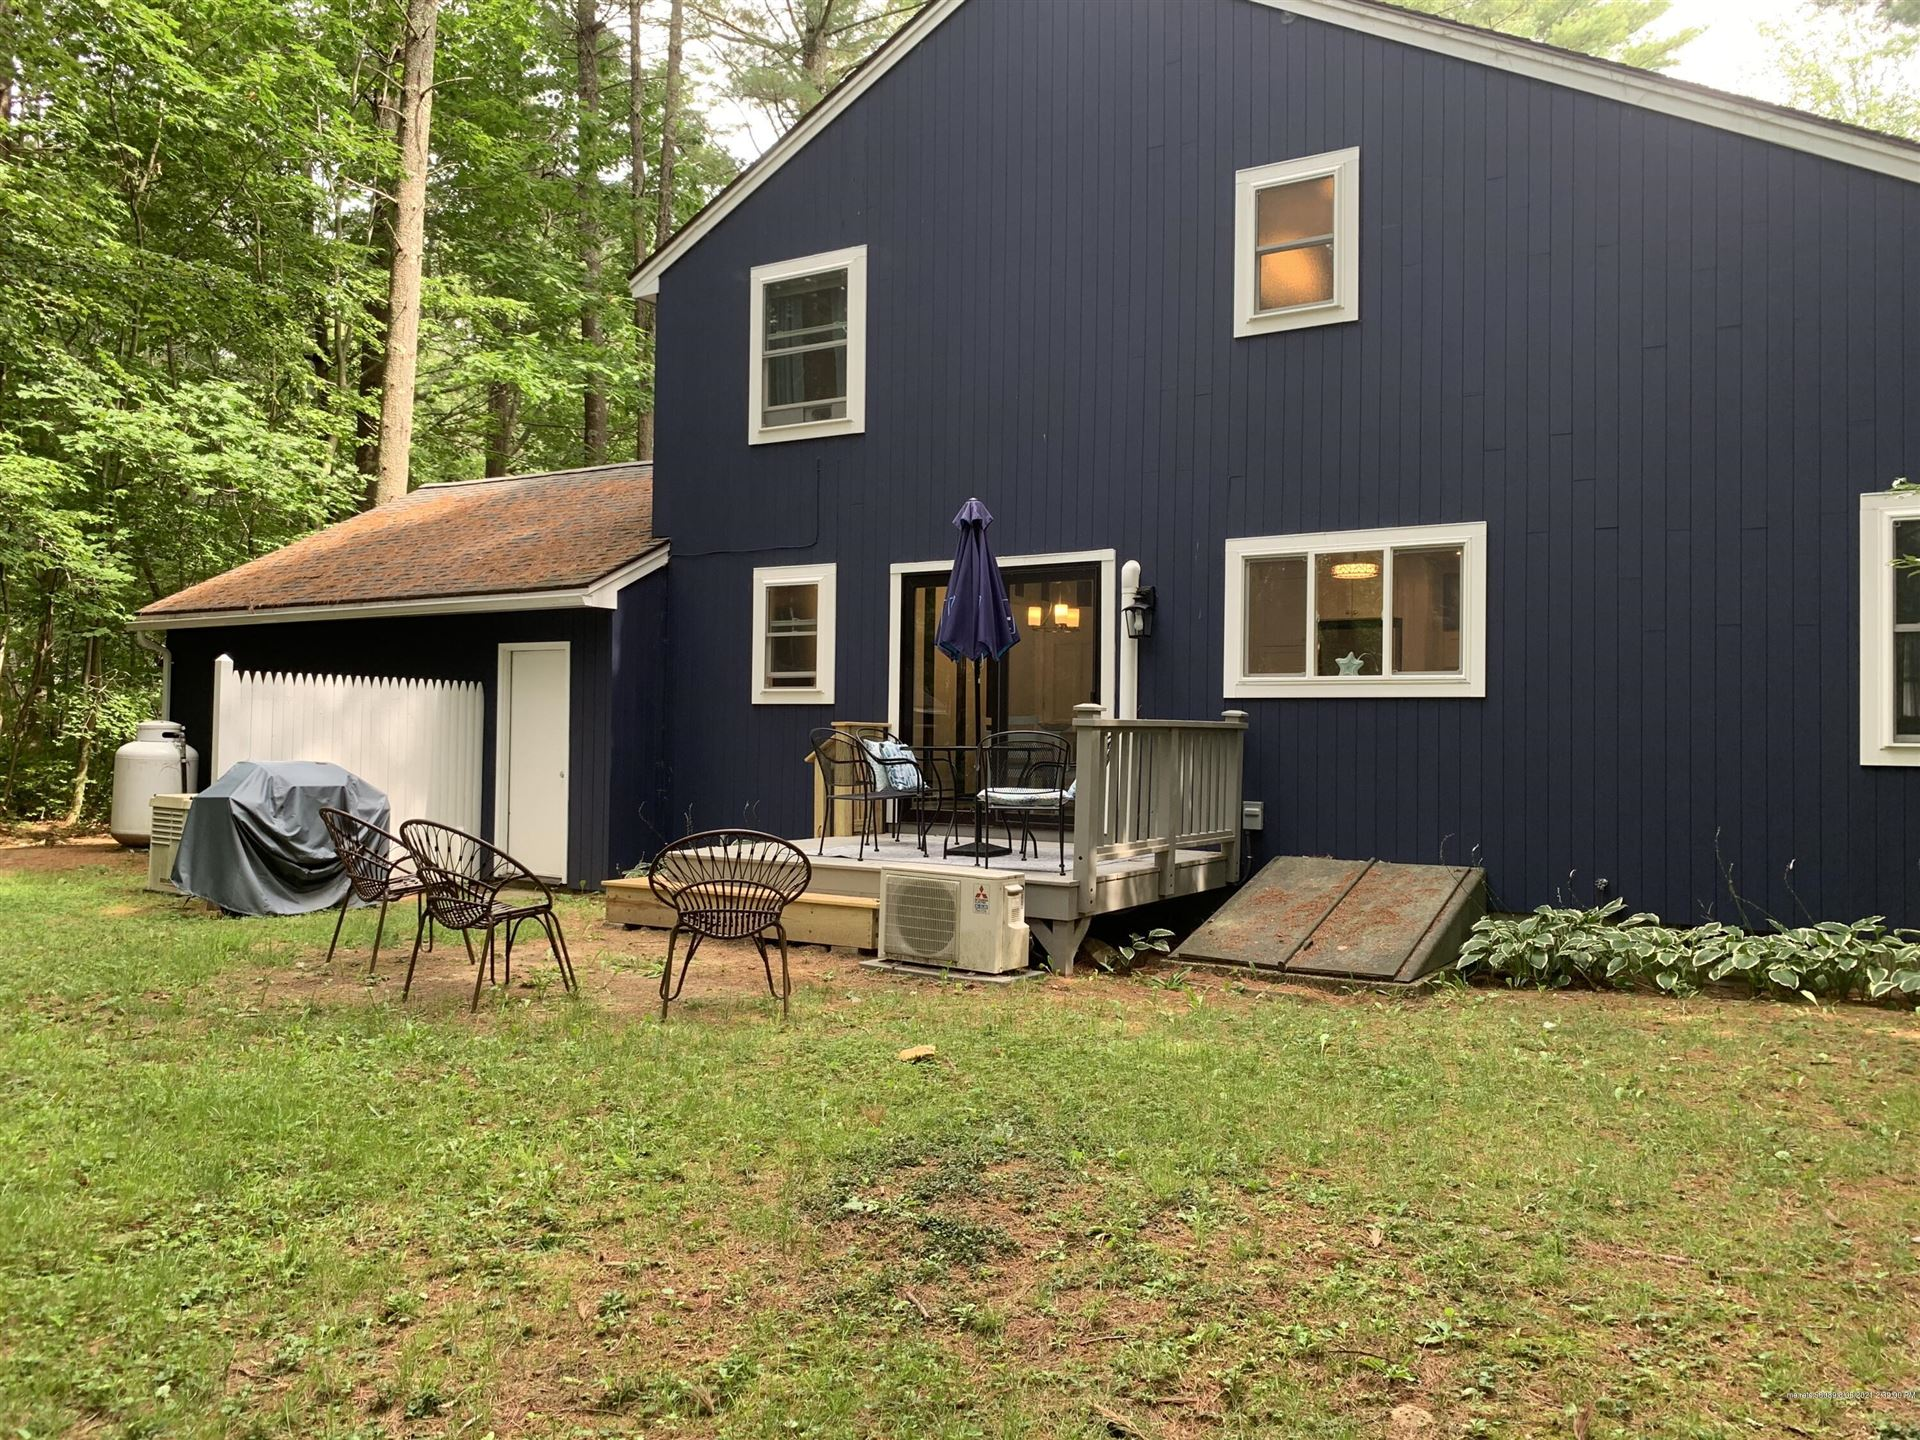 Photo of 36 Forest Lane, Wells, ME 04090 (MLS # 1503760)